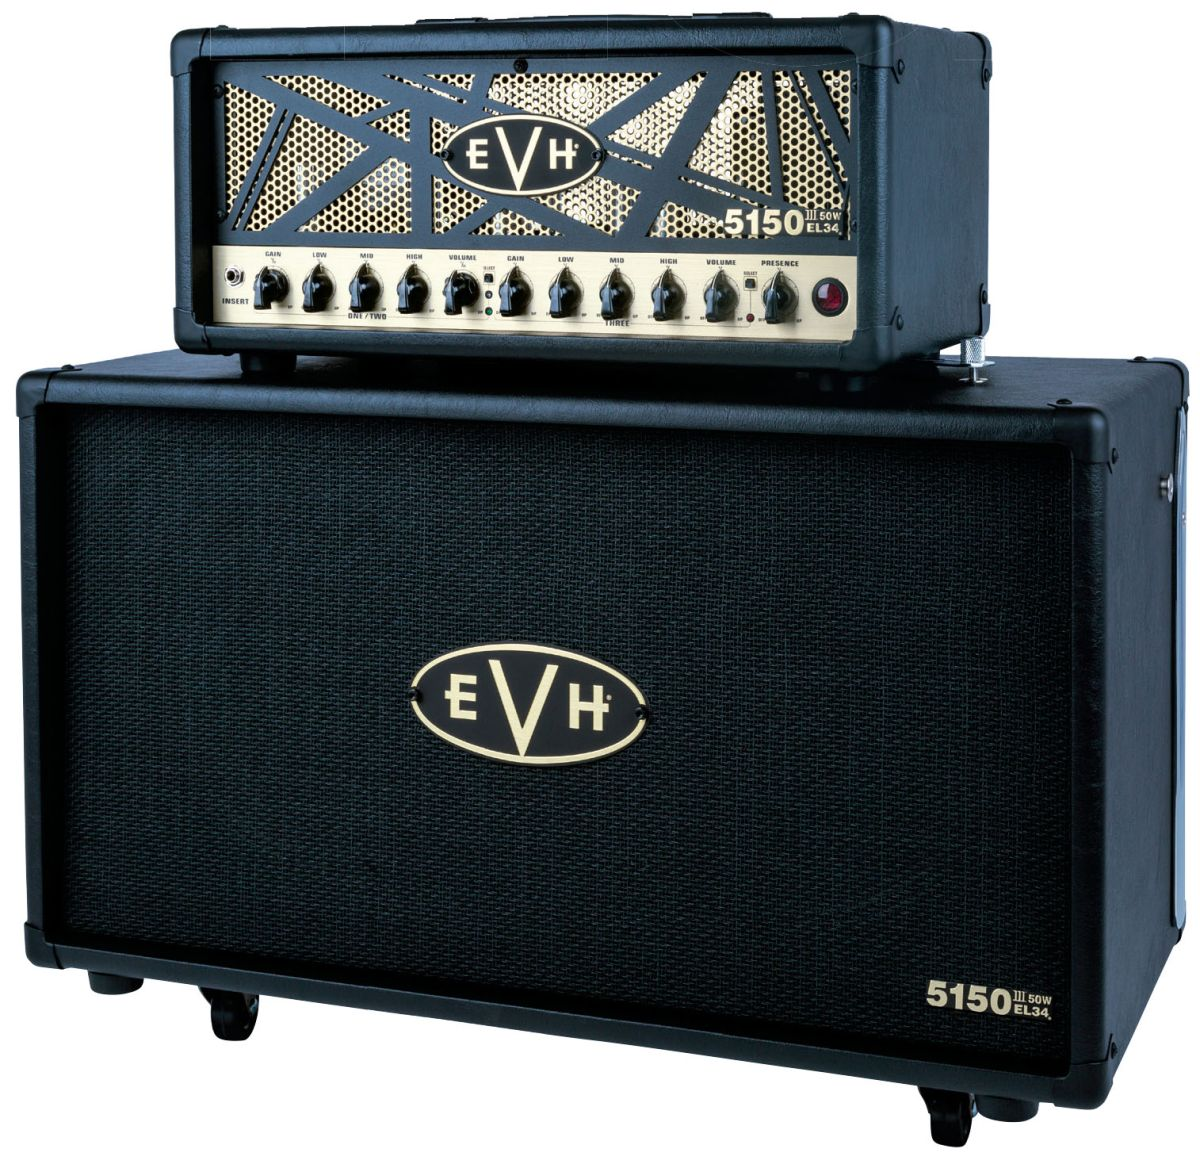 Review Evh 5150 Iii 50 Watt El34 Head Guitarworld Tube Amp Power Transformer 8211 Guitar Amplifier Analysis